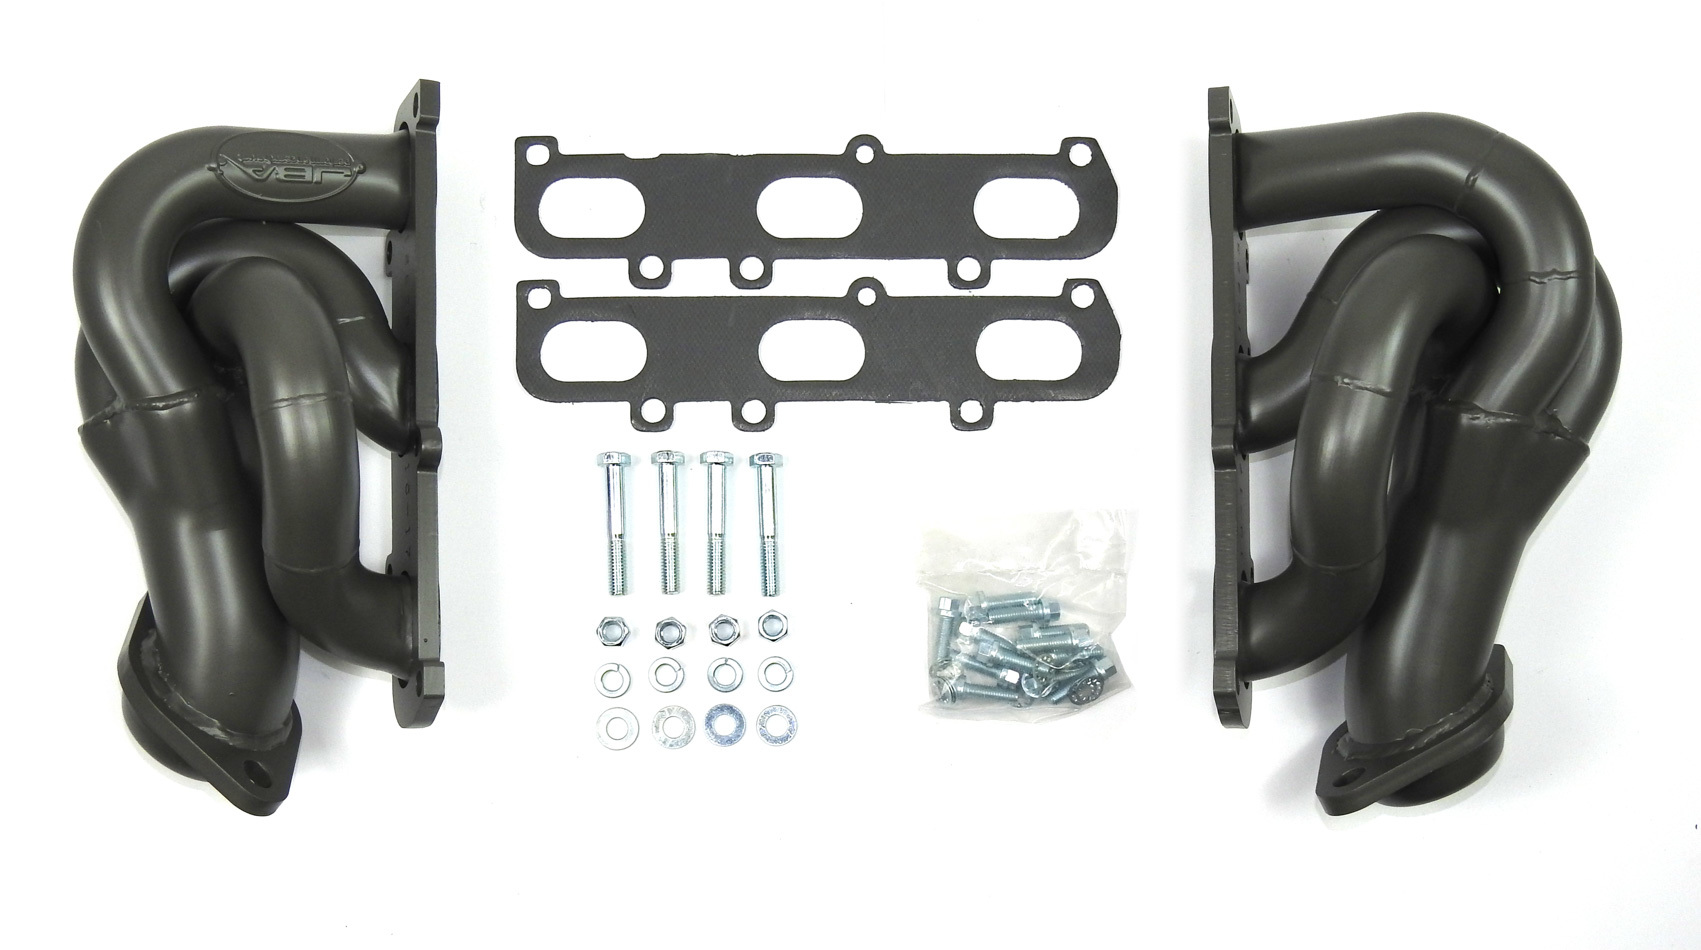 JBA Exhaust 1682SJT Headers, Cat4ward, Shorty Style, 1-5/8 in Primary, 2-1/2 in Collector, Stainless, Titanium Metallic Ceramic, 3.5 / 3.7 L, Ford EcoBoost, Ford Fullsize Truck 2011-17, Kit